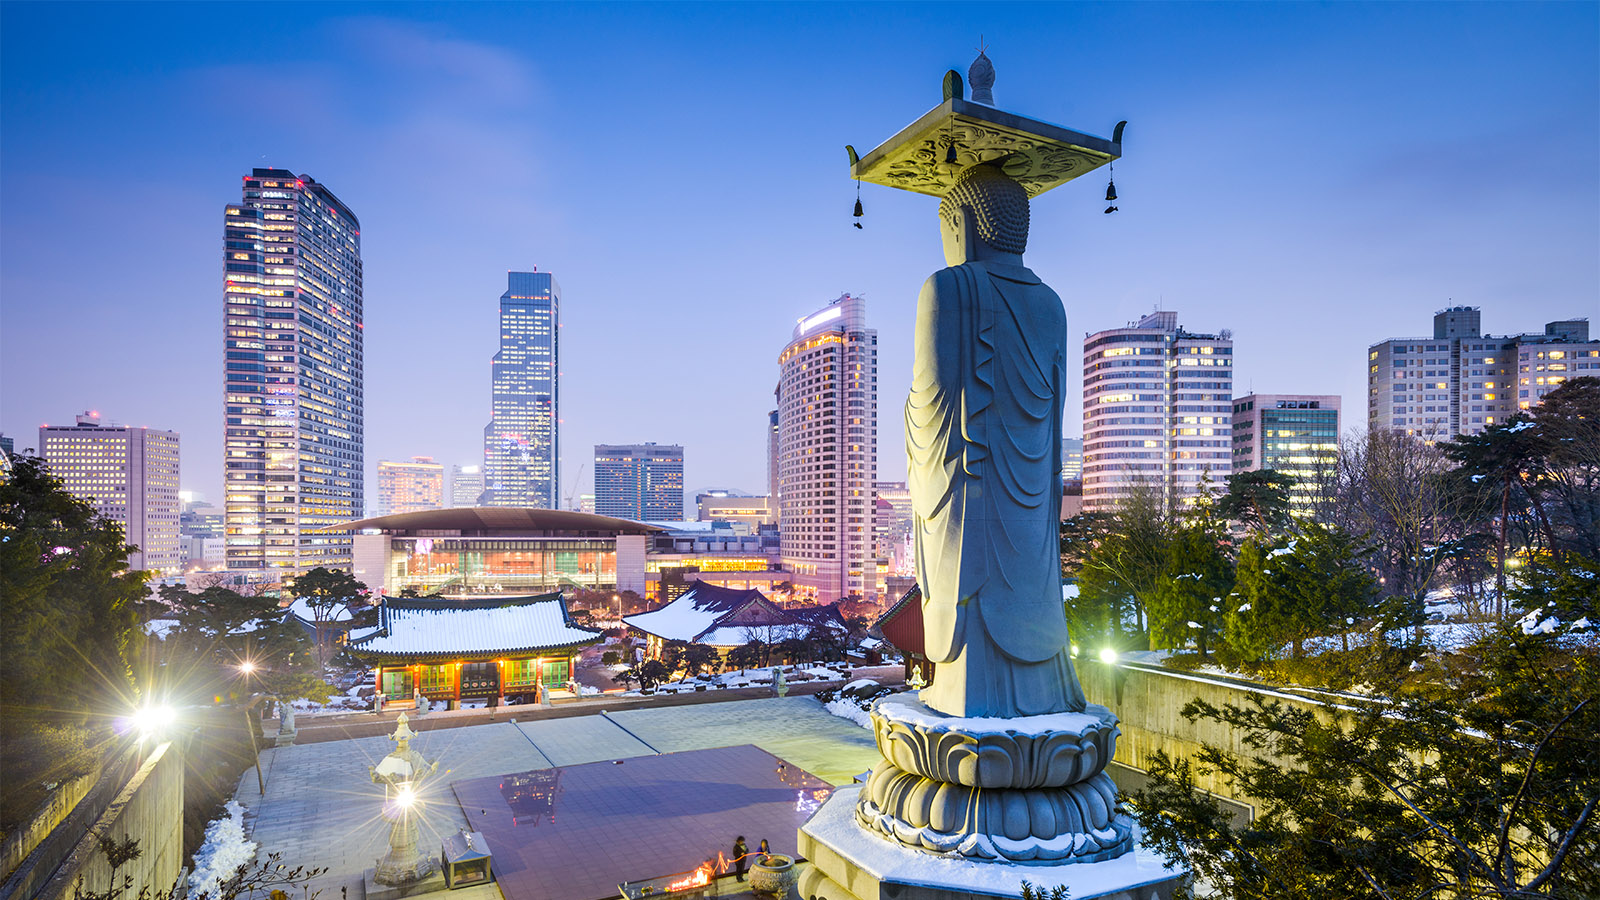 10 Asian Cities That Should Be on Your Bucket List - SmarterTravel